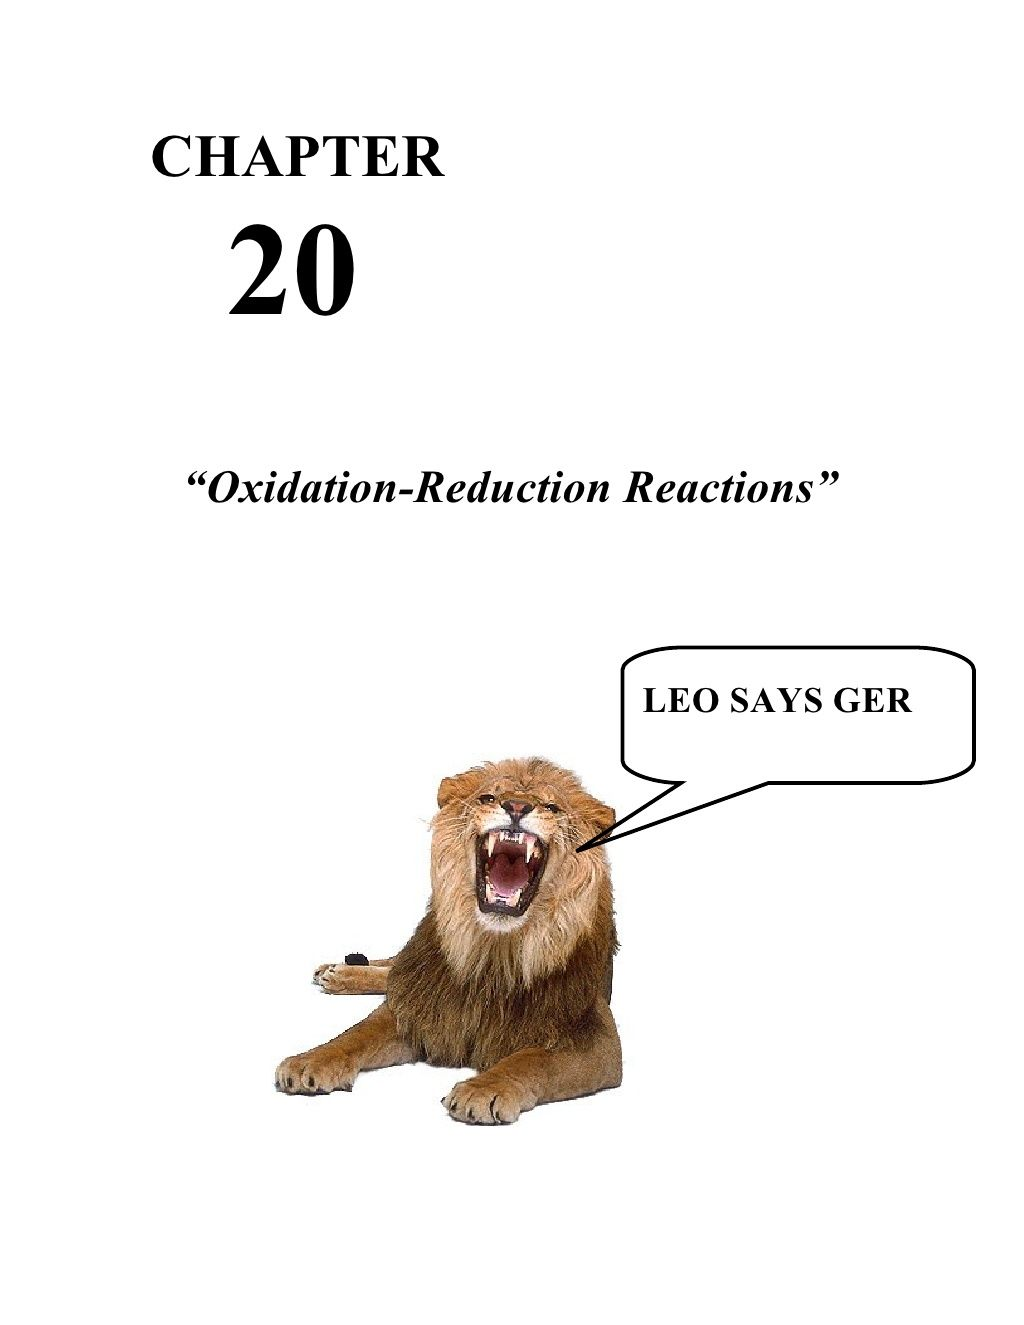 Chapter 20 chem by mr walajtys via slideshare qumica pinterest chapter 20 chem by mr walajtys via slideshare urtaz Choice Image